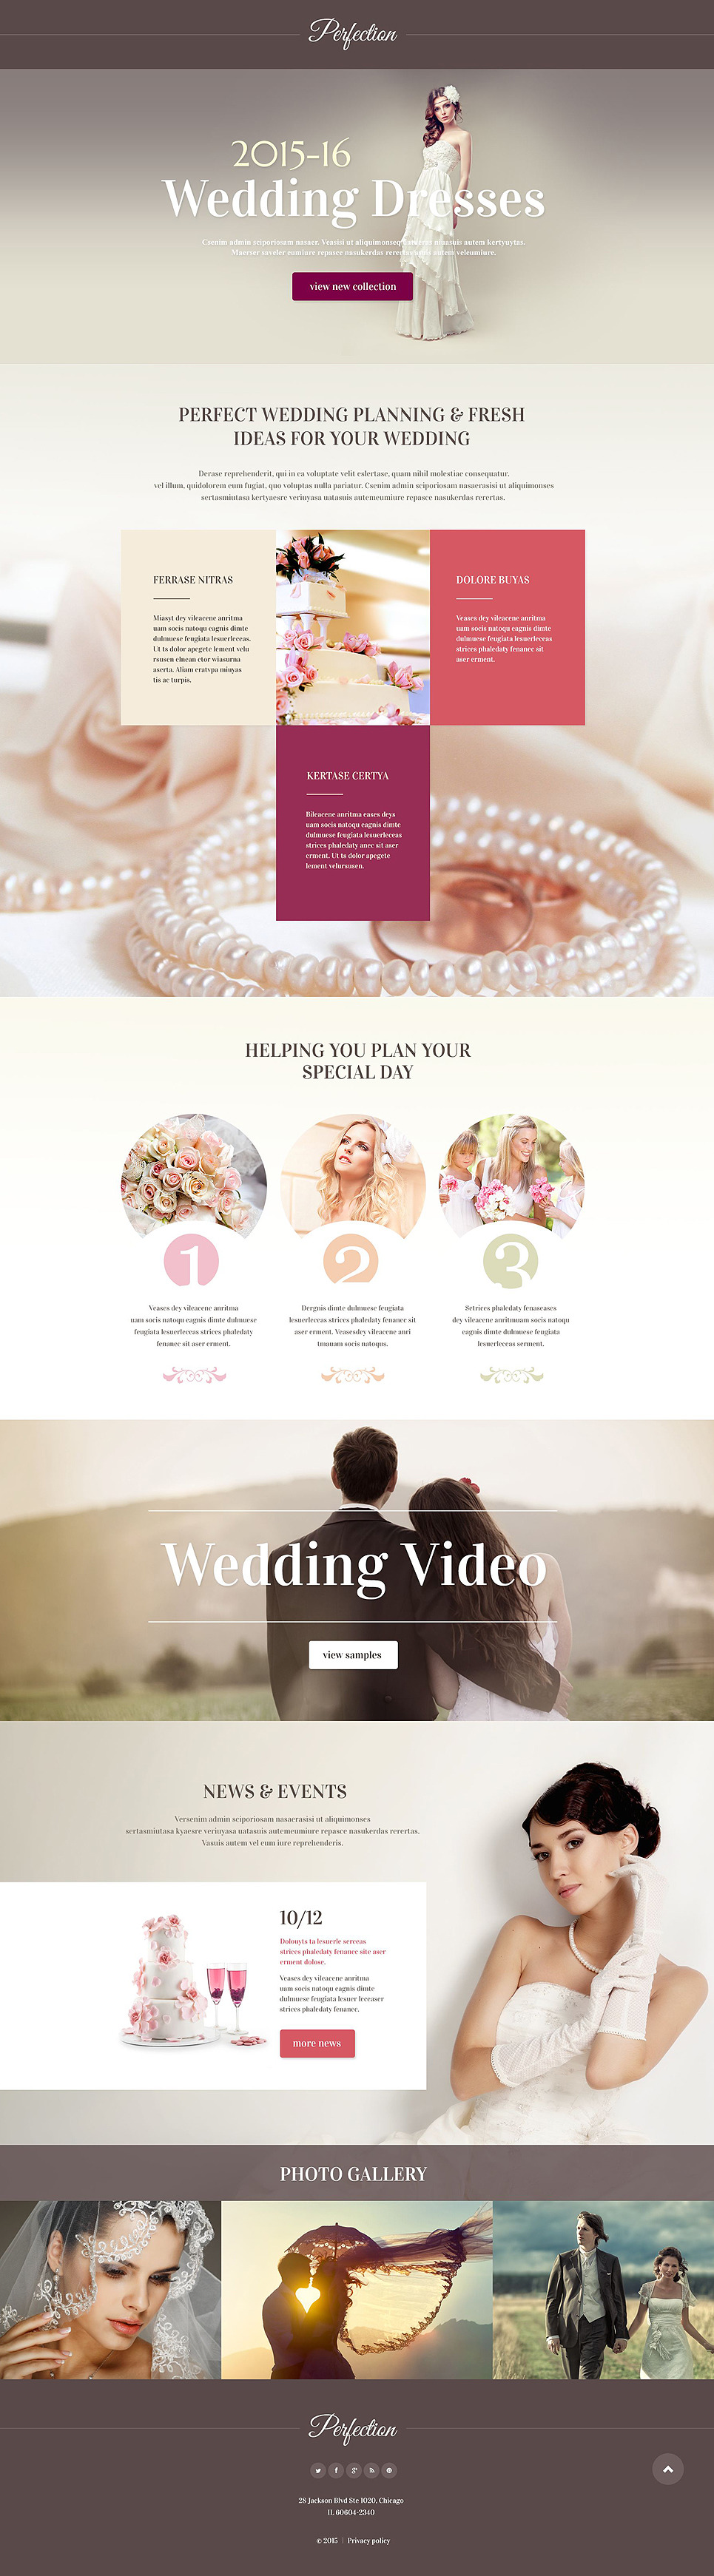 Wedding Venues Responsive Landing Page Template New Screenshots BIG